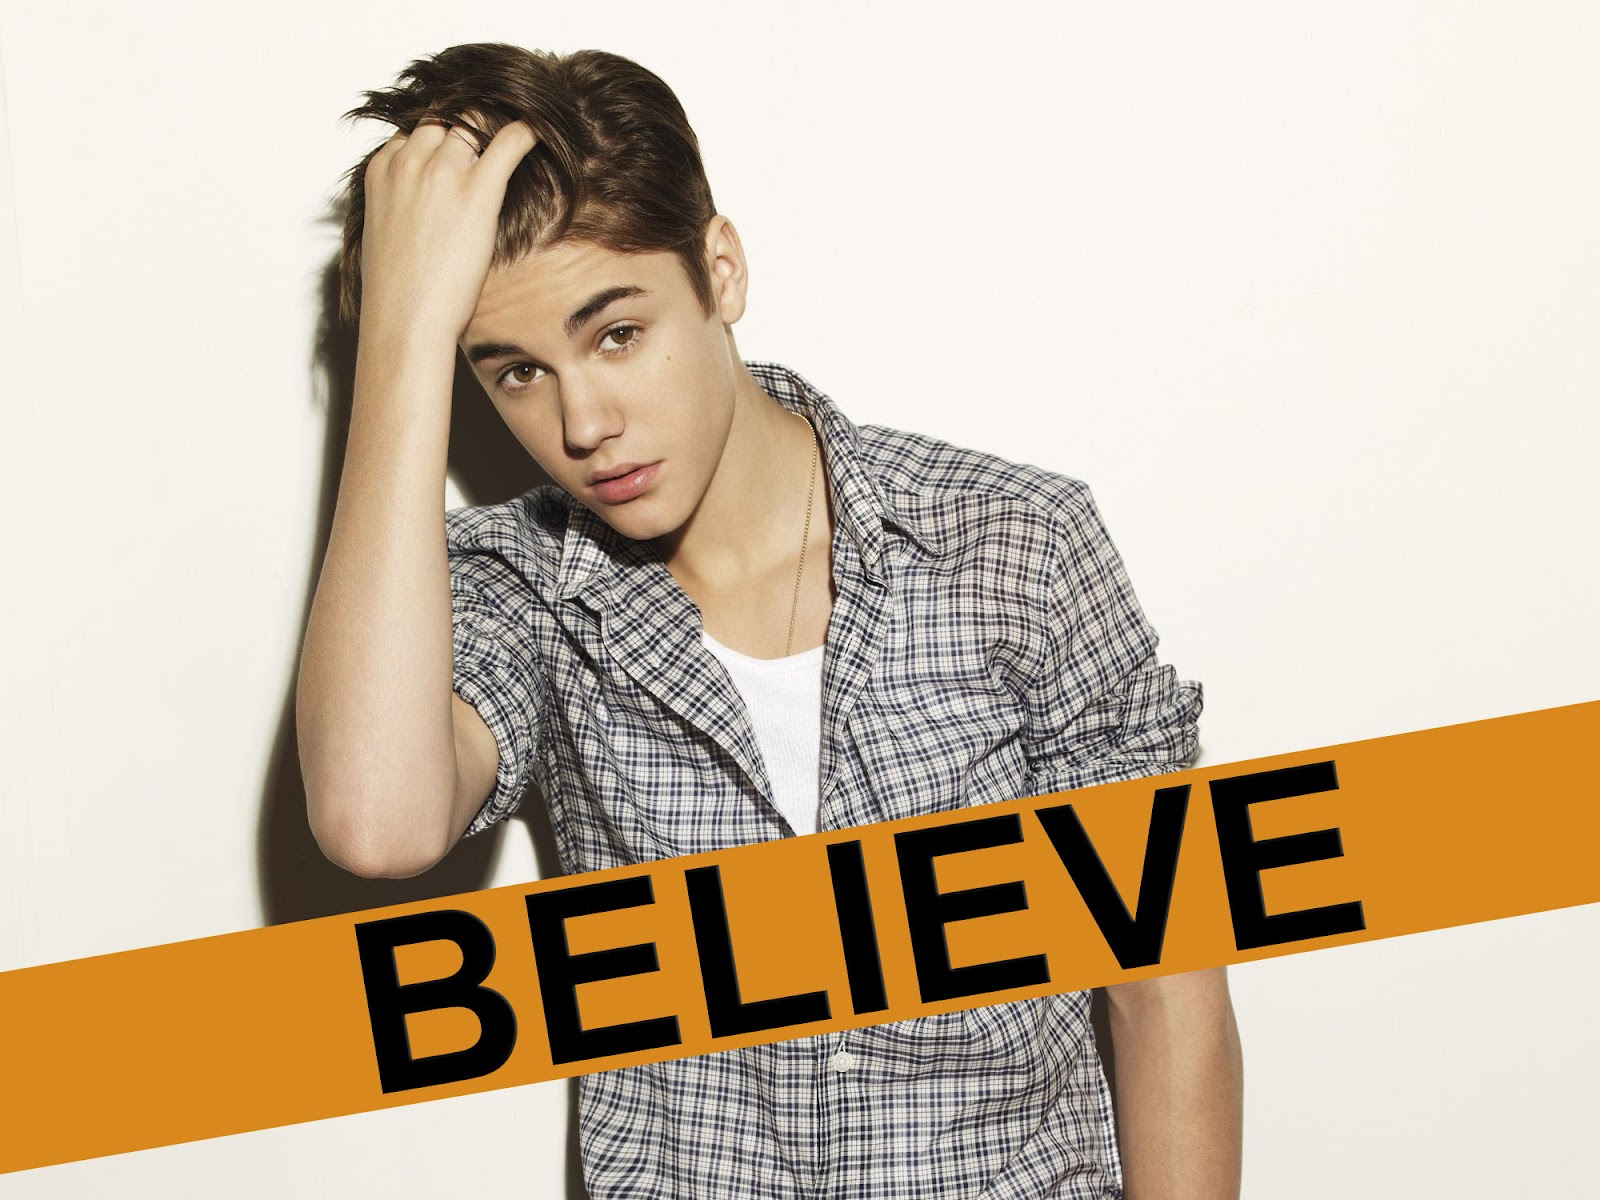 Download latest songs of 2012 free bieber justin